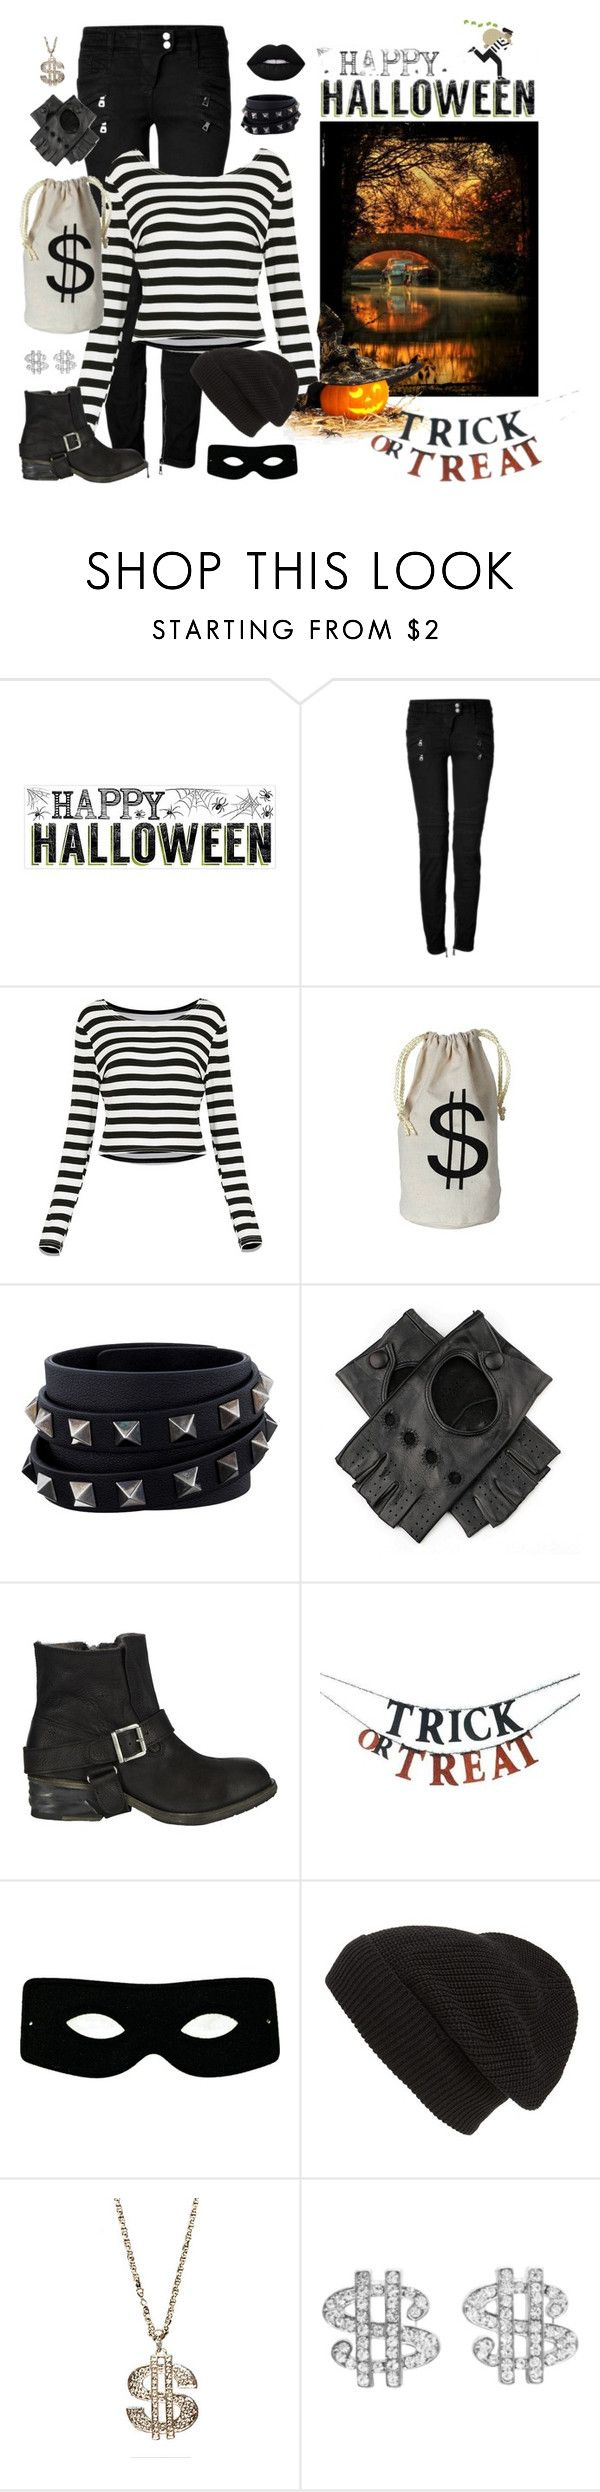 """Bank robber"" by bebe6121985 ❤ liked on Polyvore featuring Balmain, Valentino, AllSaints, Home Decorators Collection, Masquerade, Phase 3, Novelty, Lime Crime, Halloween and Costume"